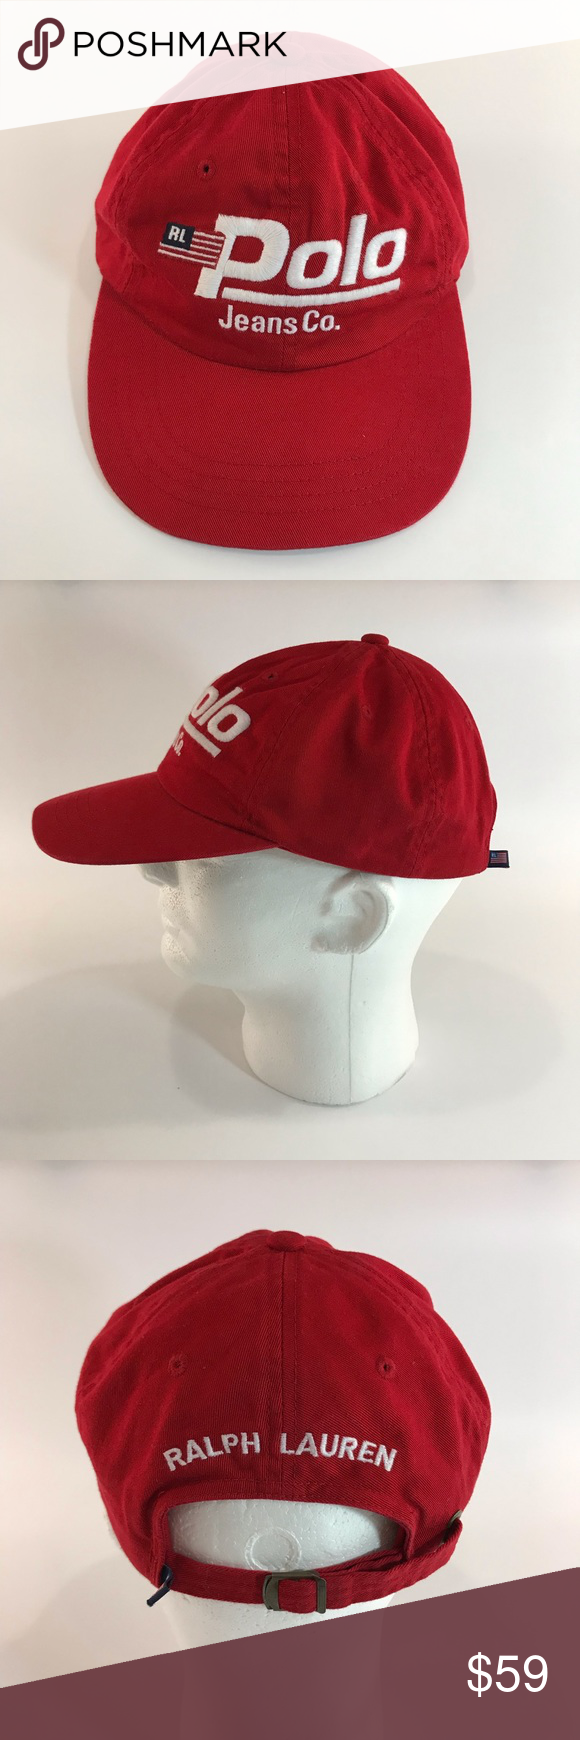 99e02318 Vtg Ralph Lauren Polo Jeans Co Hat DESCRIPTION: Vintage RL Polo Jeans Co Hat  DESIGNER: Ralph Lauren COLOR: red/white CONDITION: excellent preowned SIZE:  ...